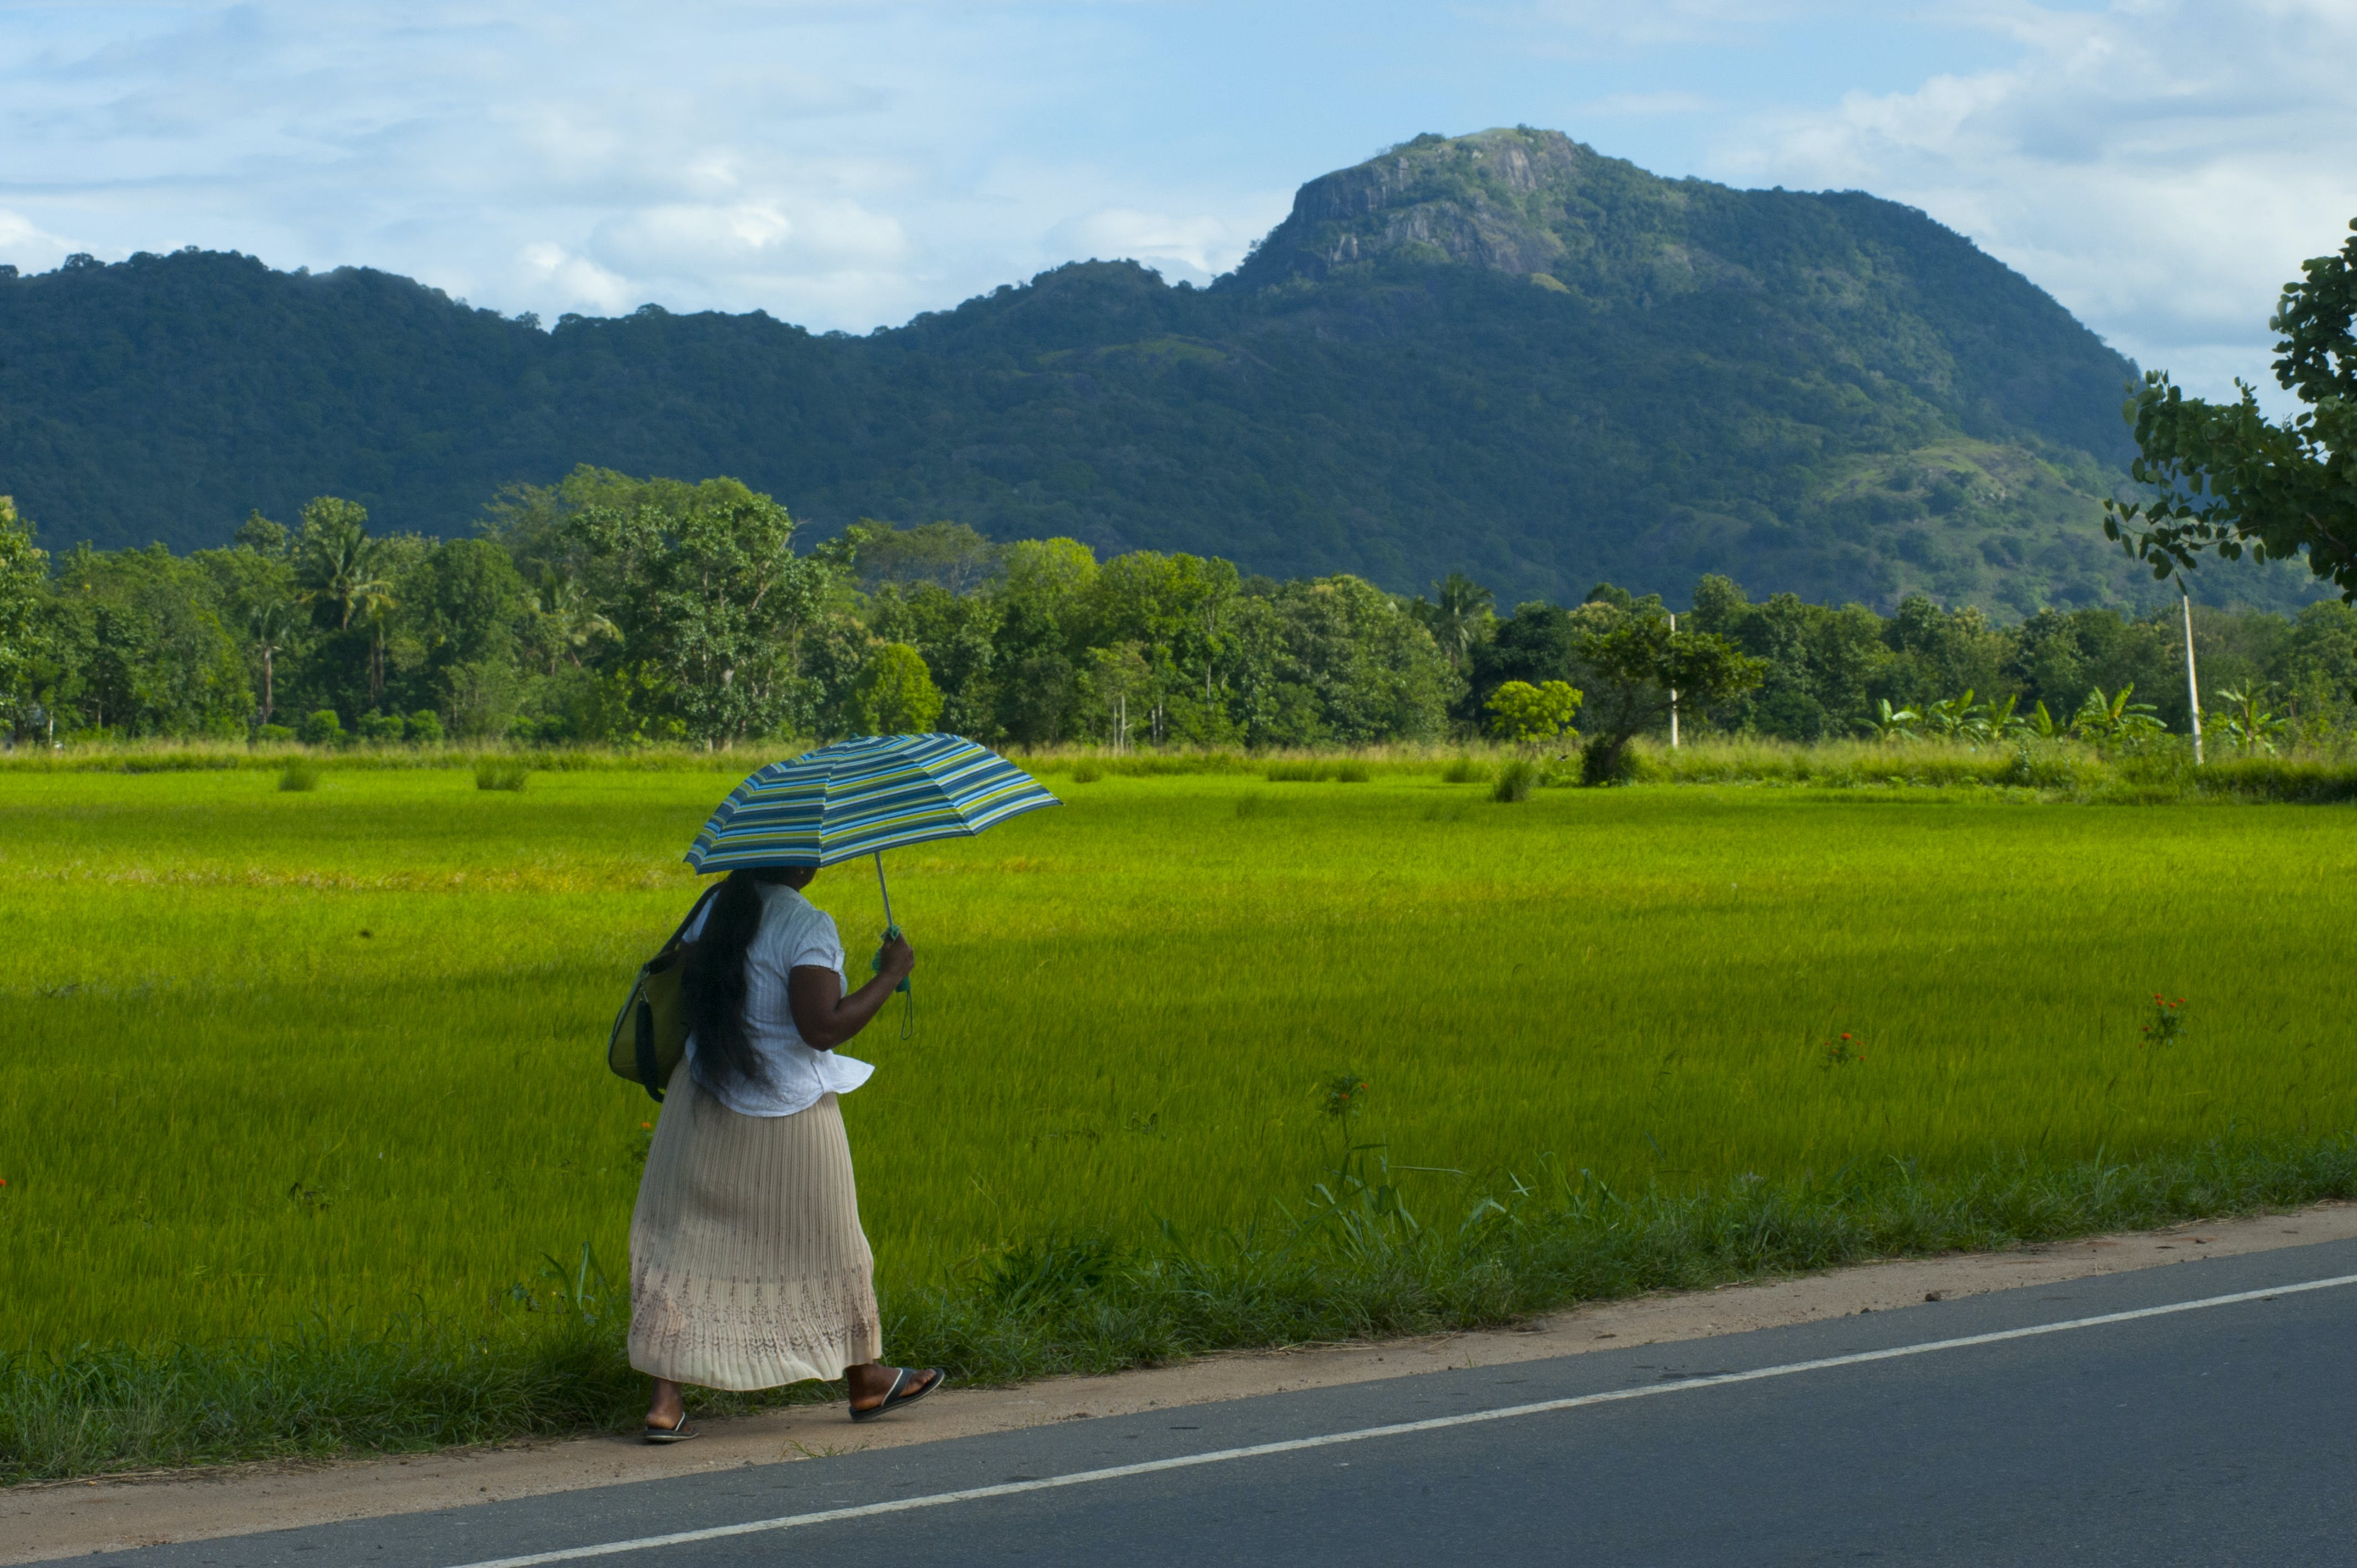 Woman in White Skirt Walking Along Road Holding Teal Umbrella